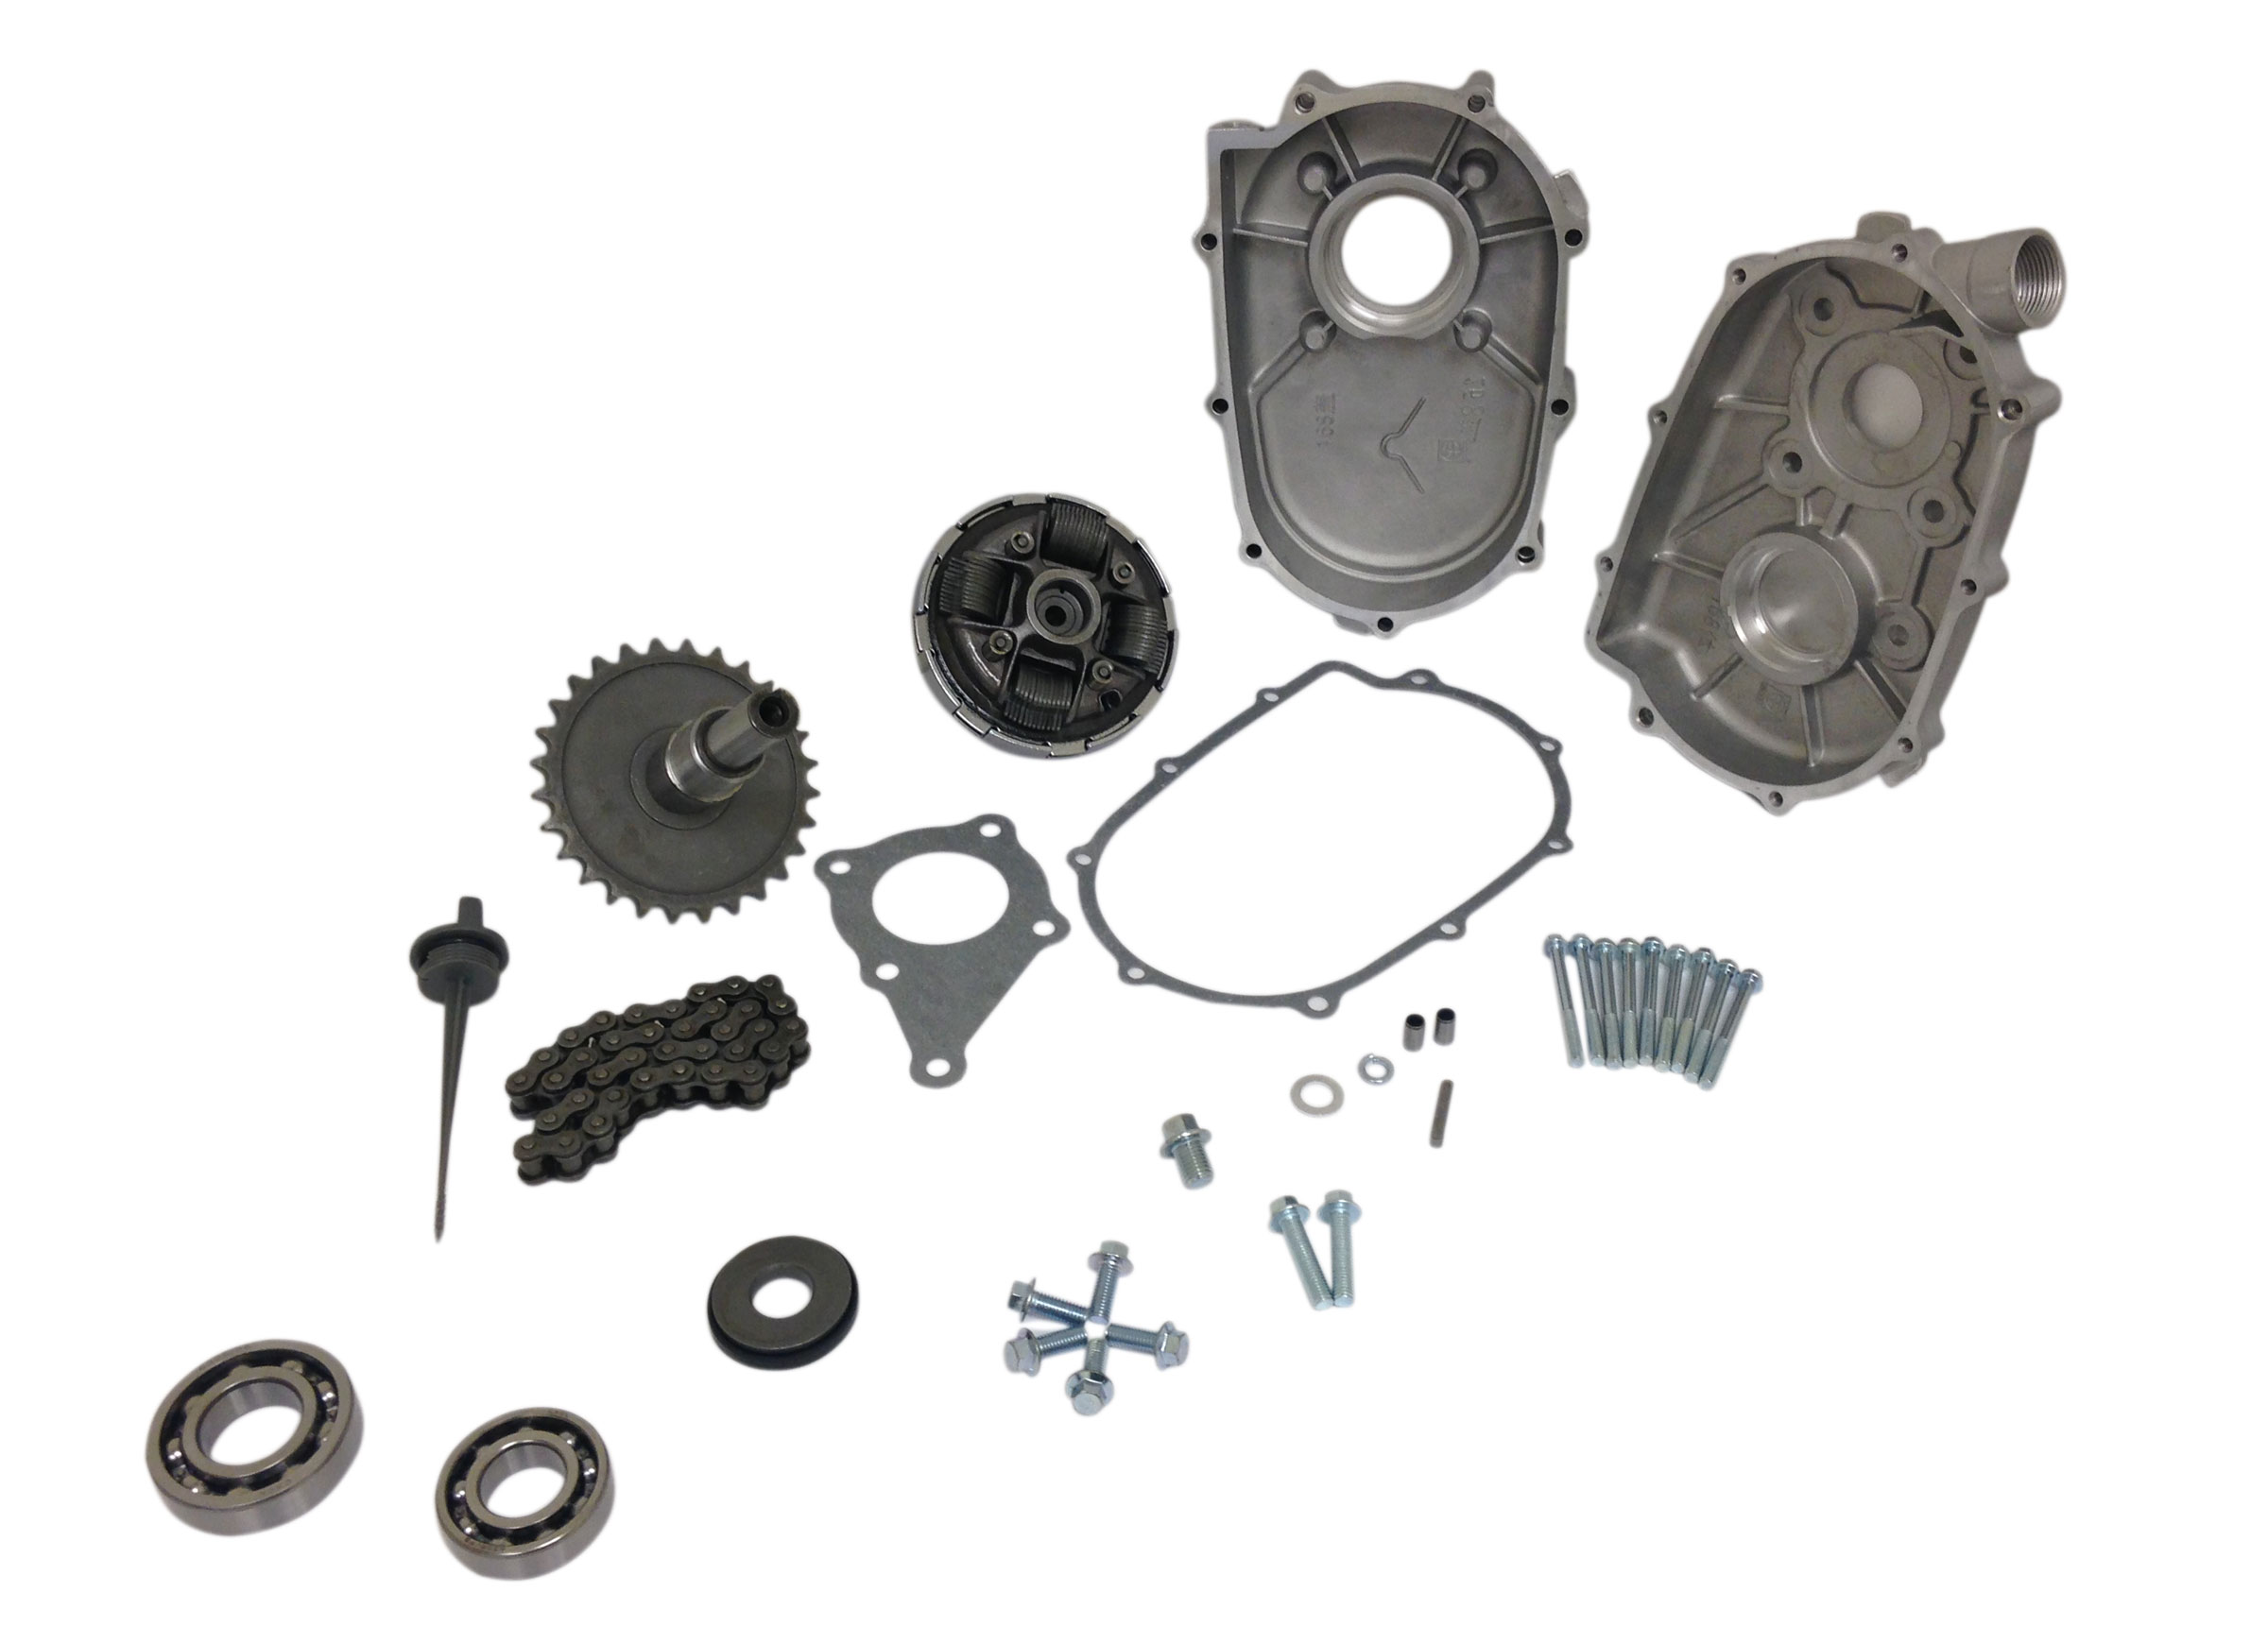 2:1 Reduction Gearbox Kit for Honda 6 5HP GX200 Engine (22mm)